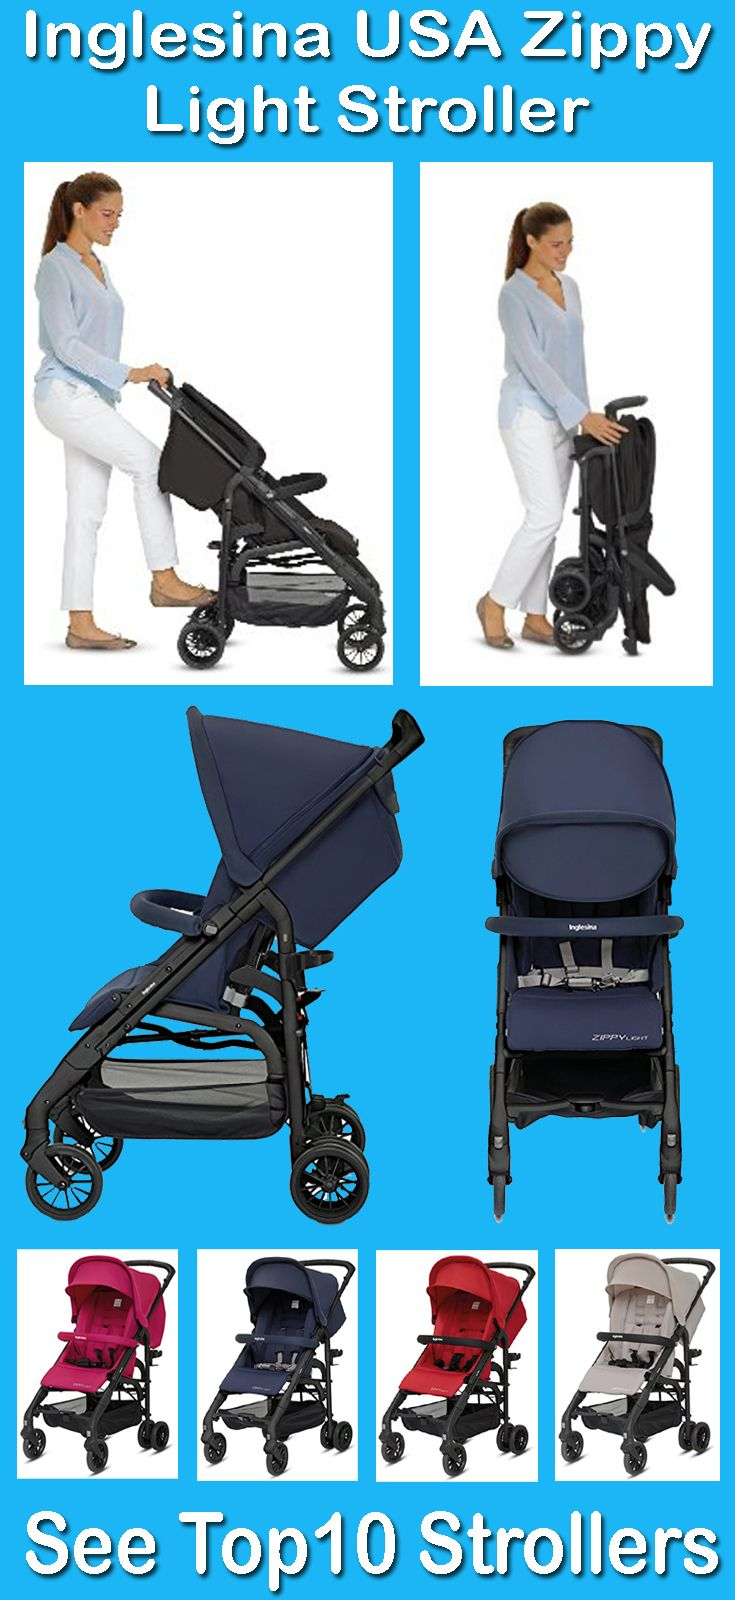 Top Lightweight Travel System Strollers Inglesina Zippy Light Stroller Features 3 Position Fully